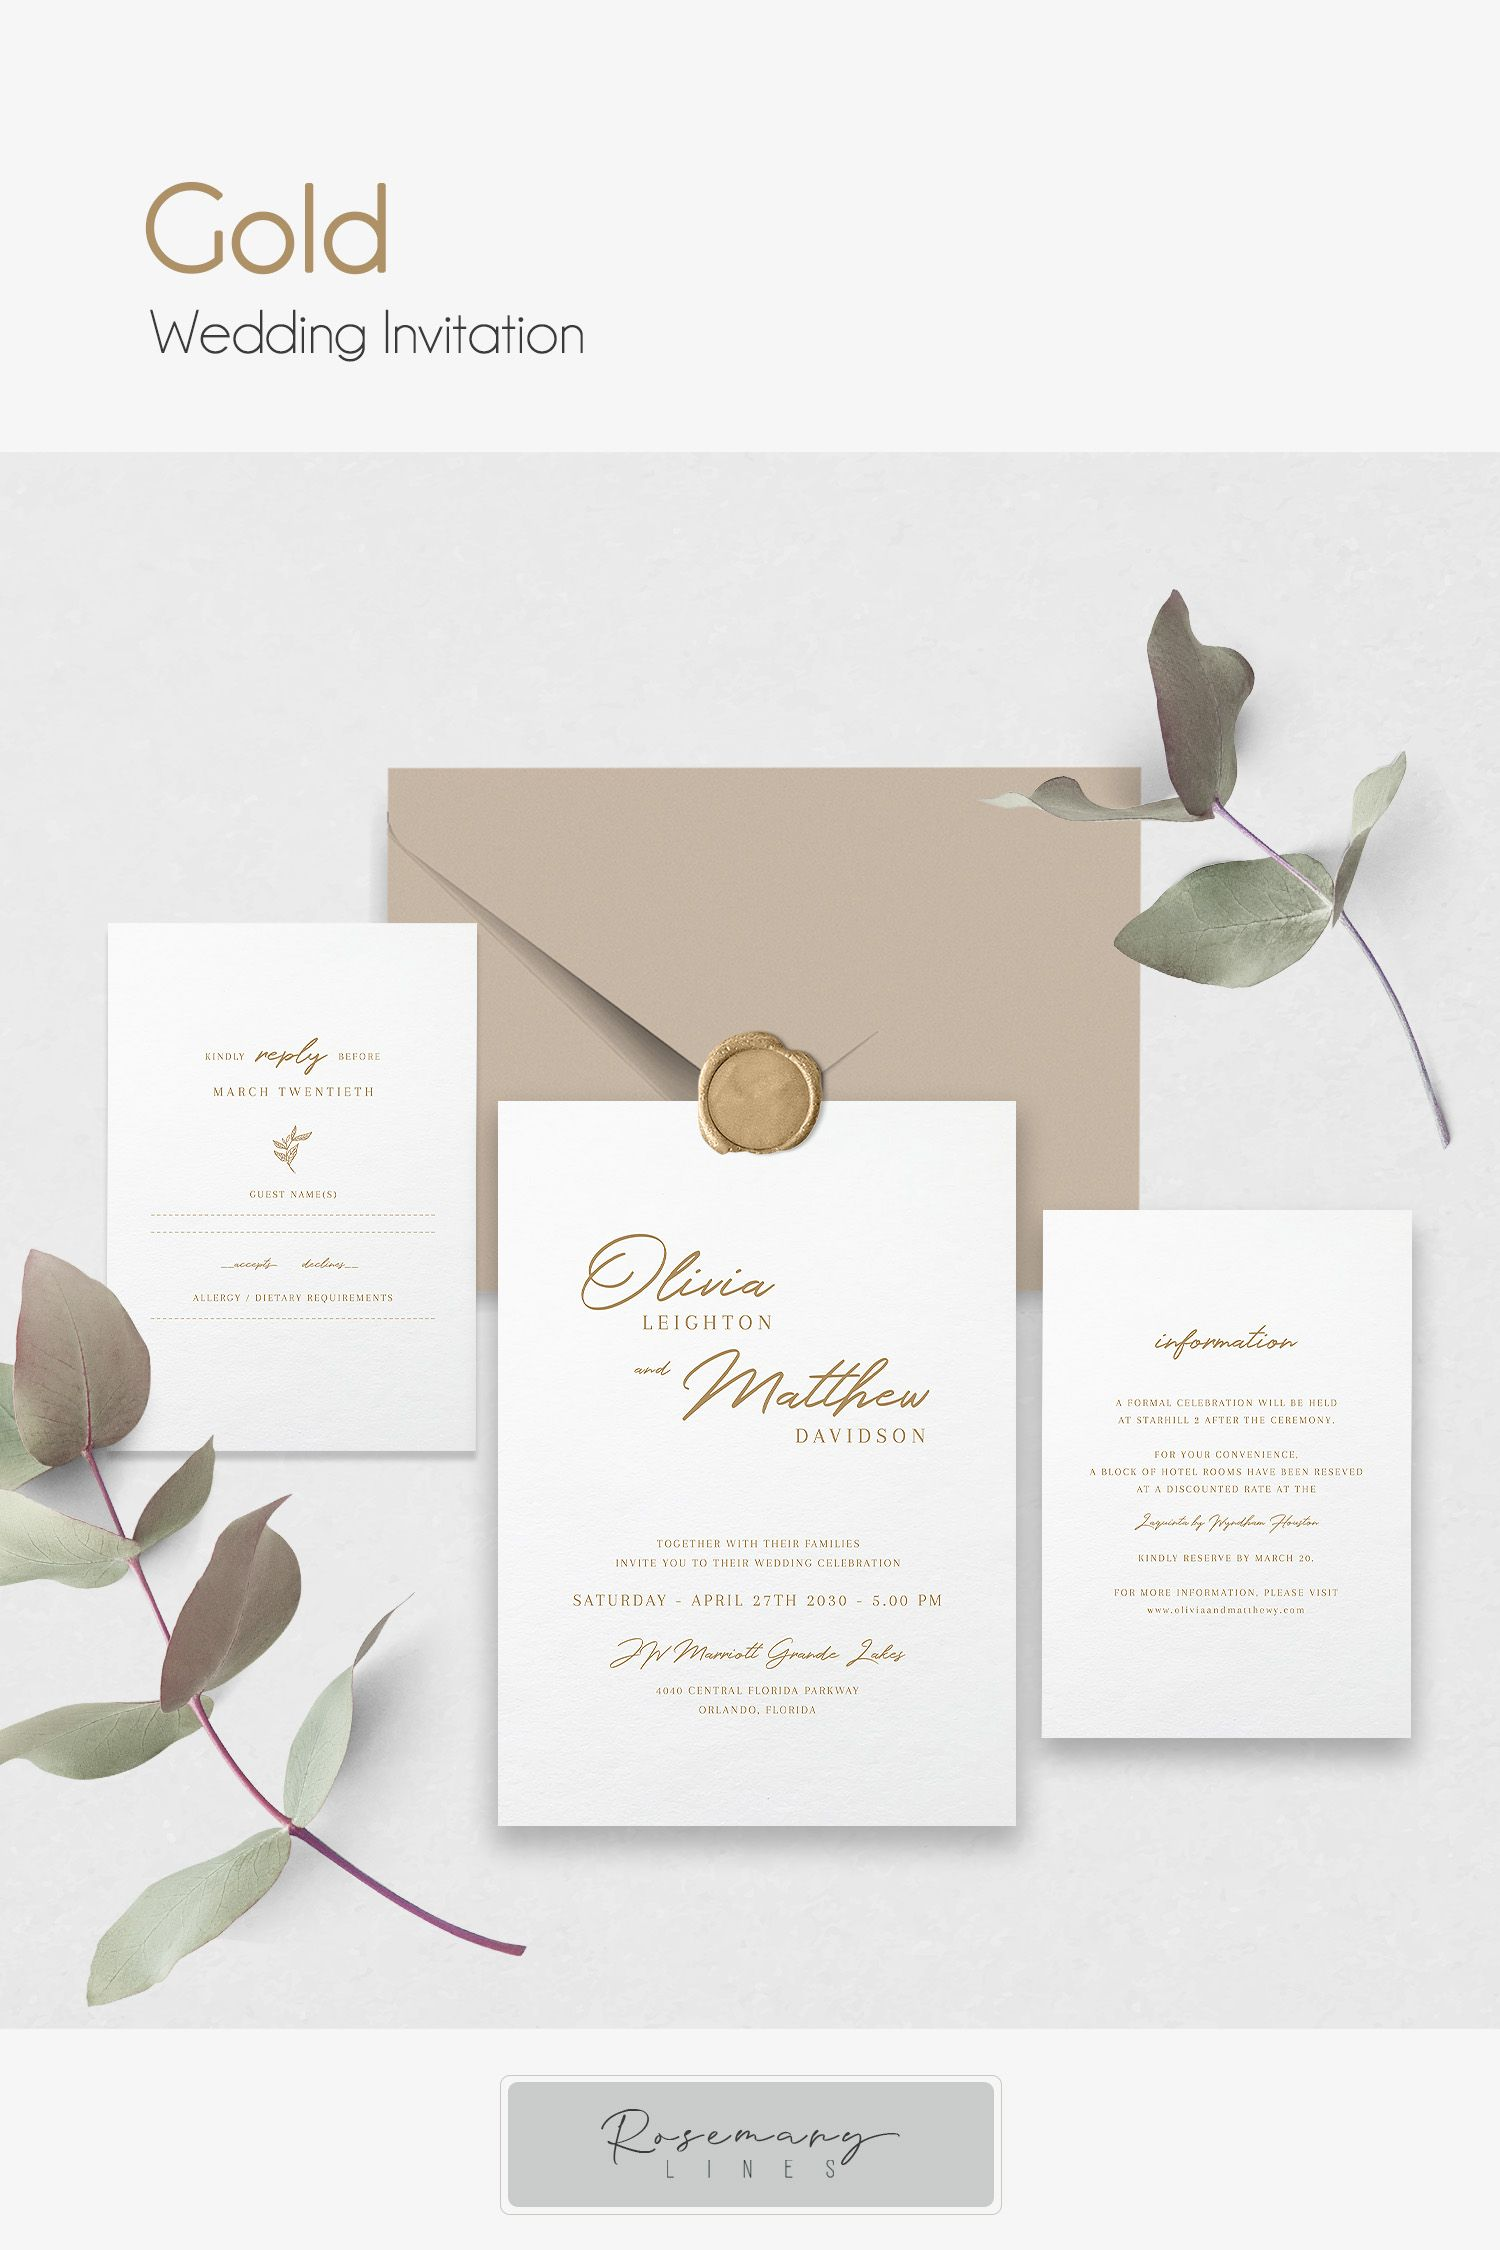 Gold Wedding Invitation Template Gold Wedding Suite Elegant Etsy In 2020 Gold Wedding Invitations Wedding Invitation Templates Wedding Invitations